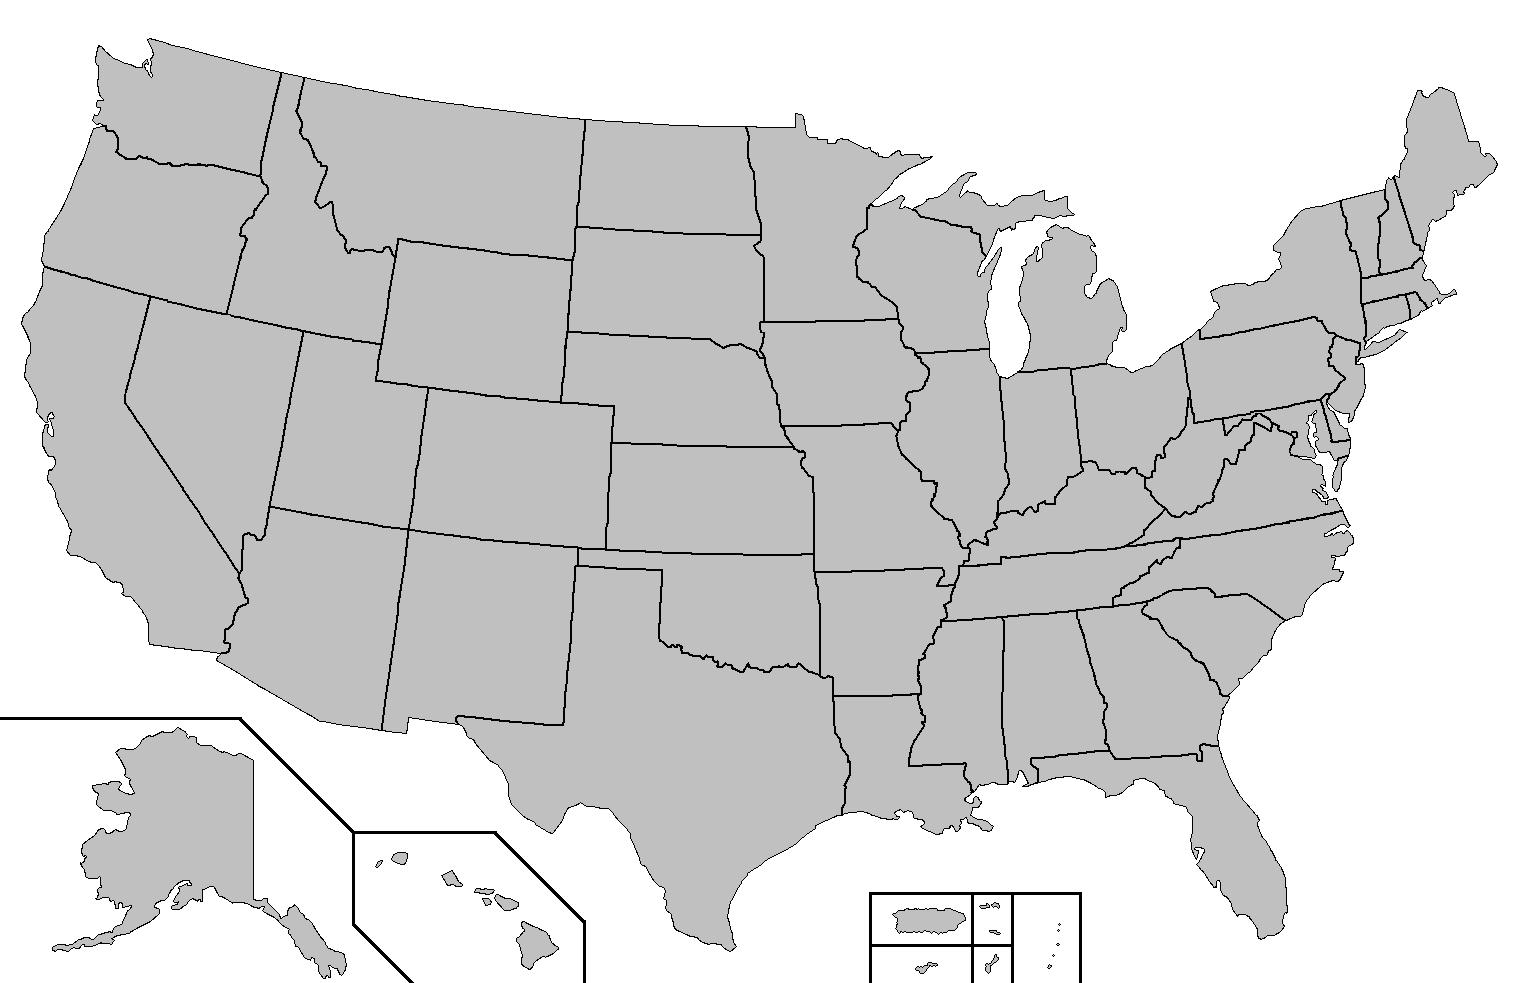 Blank US State map - US State map blank (Northern America ...